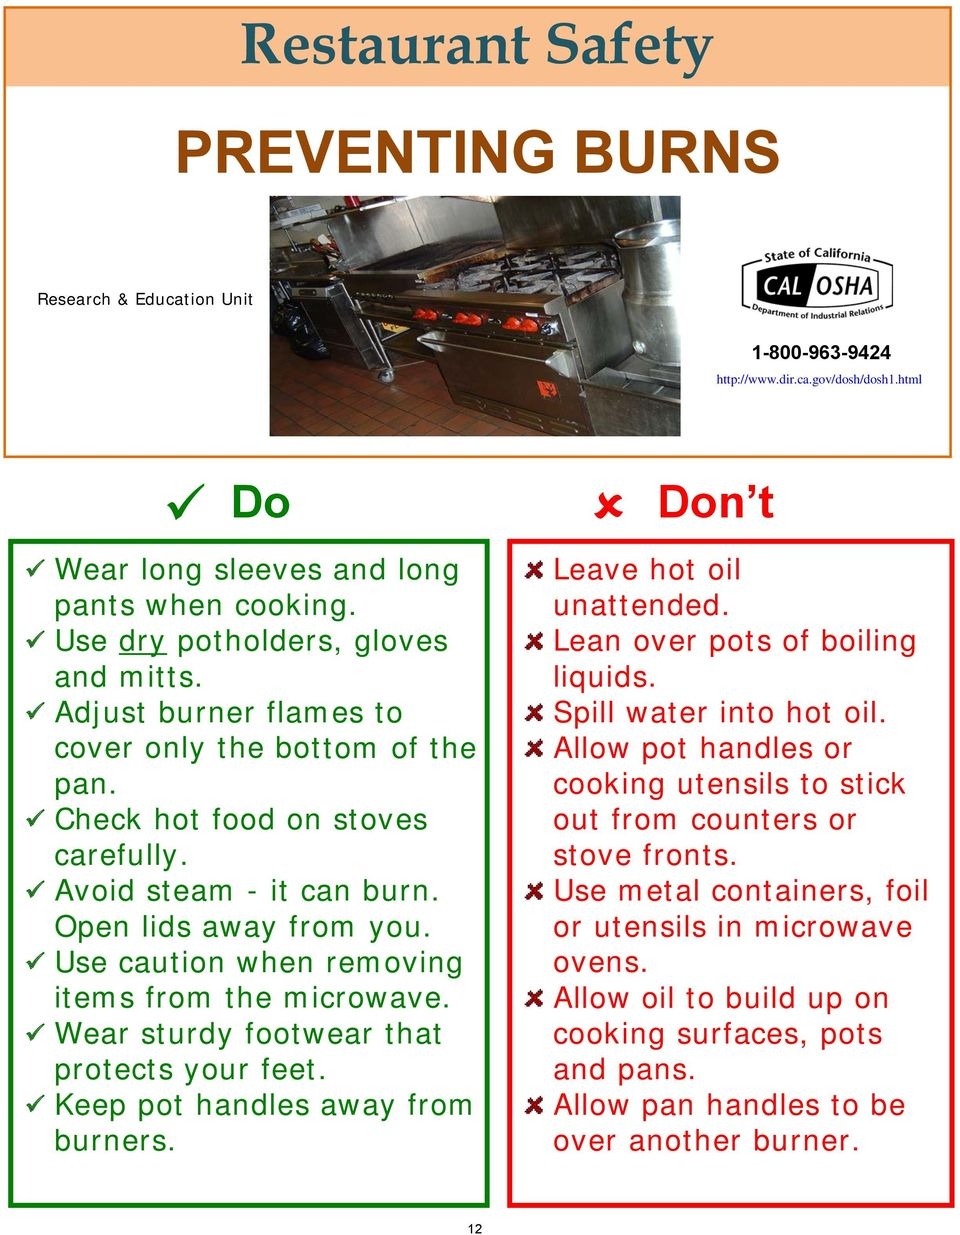 Use caution when removing items from the microwave. Wear sturdy footwear that protects your feet. Keep pot handles away from burners. Don t Leave hot oil unattended. Lean over pots of boiling liquids.